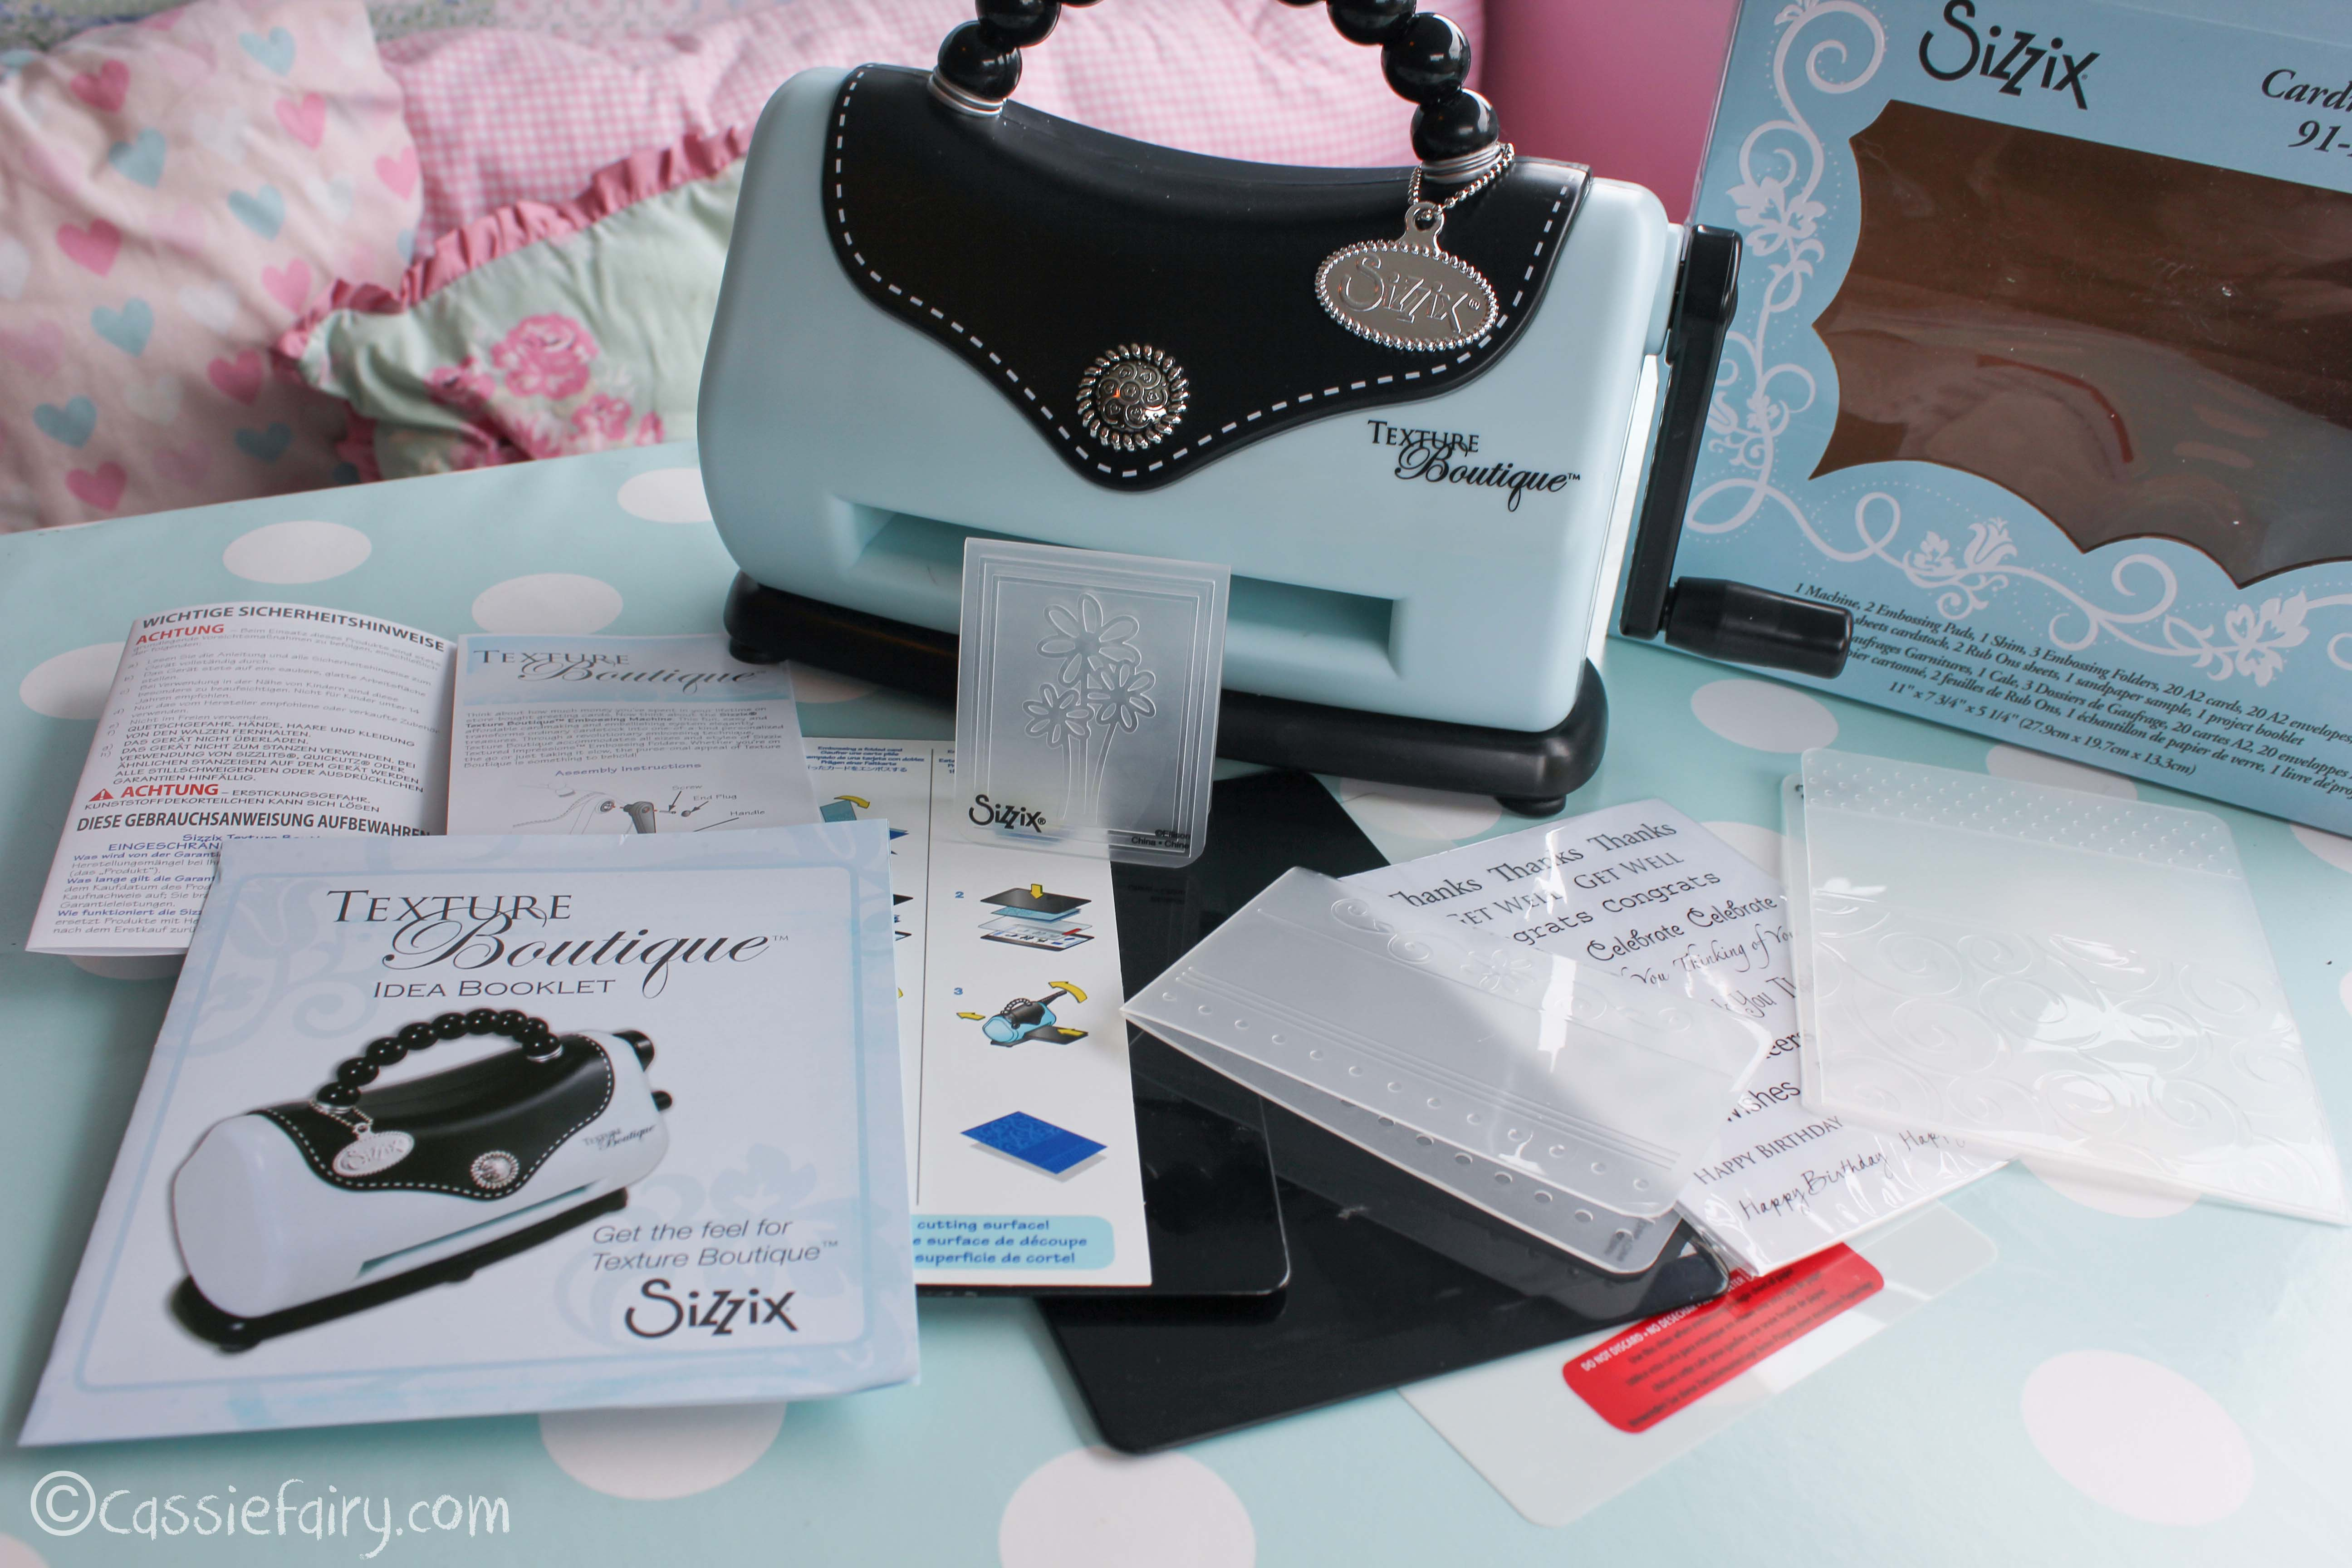 Exceptional Sizzix Card Making Ideas Part - 2: Cassiefairy